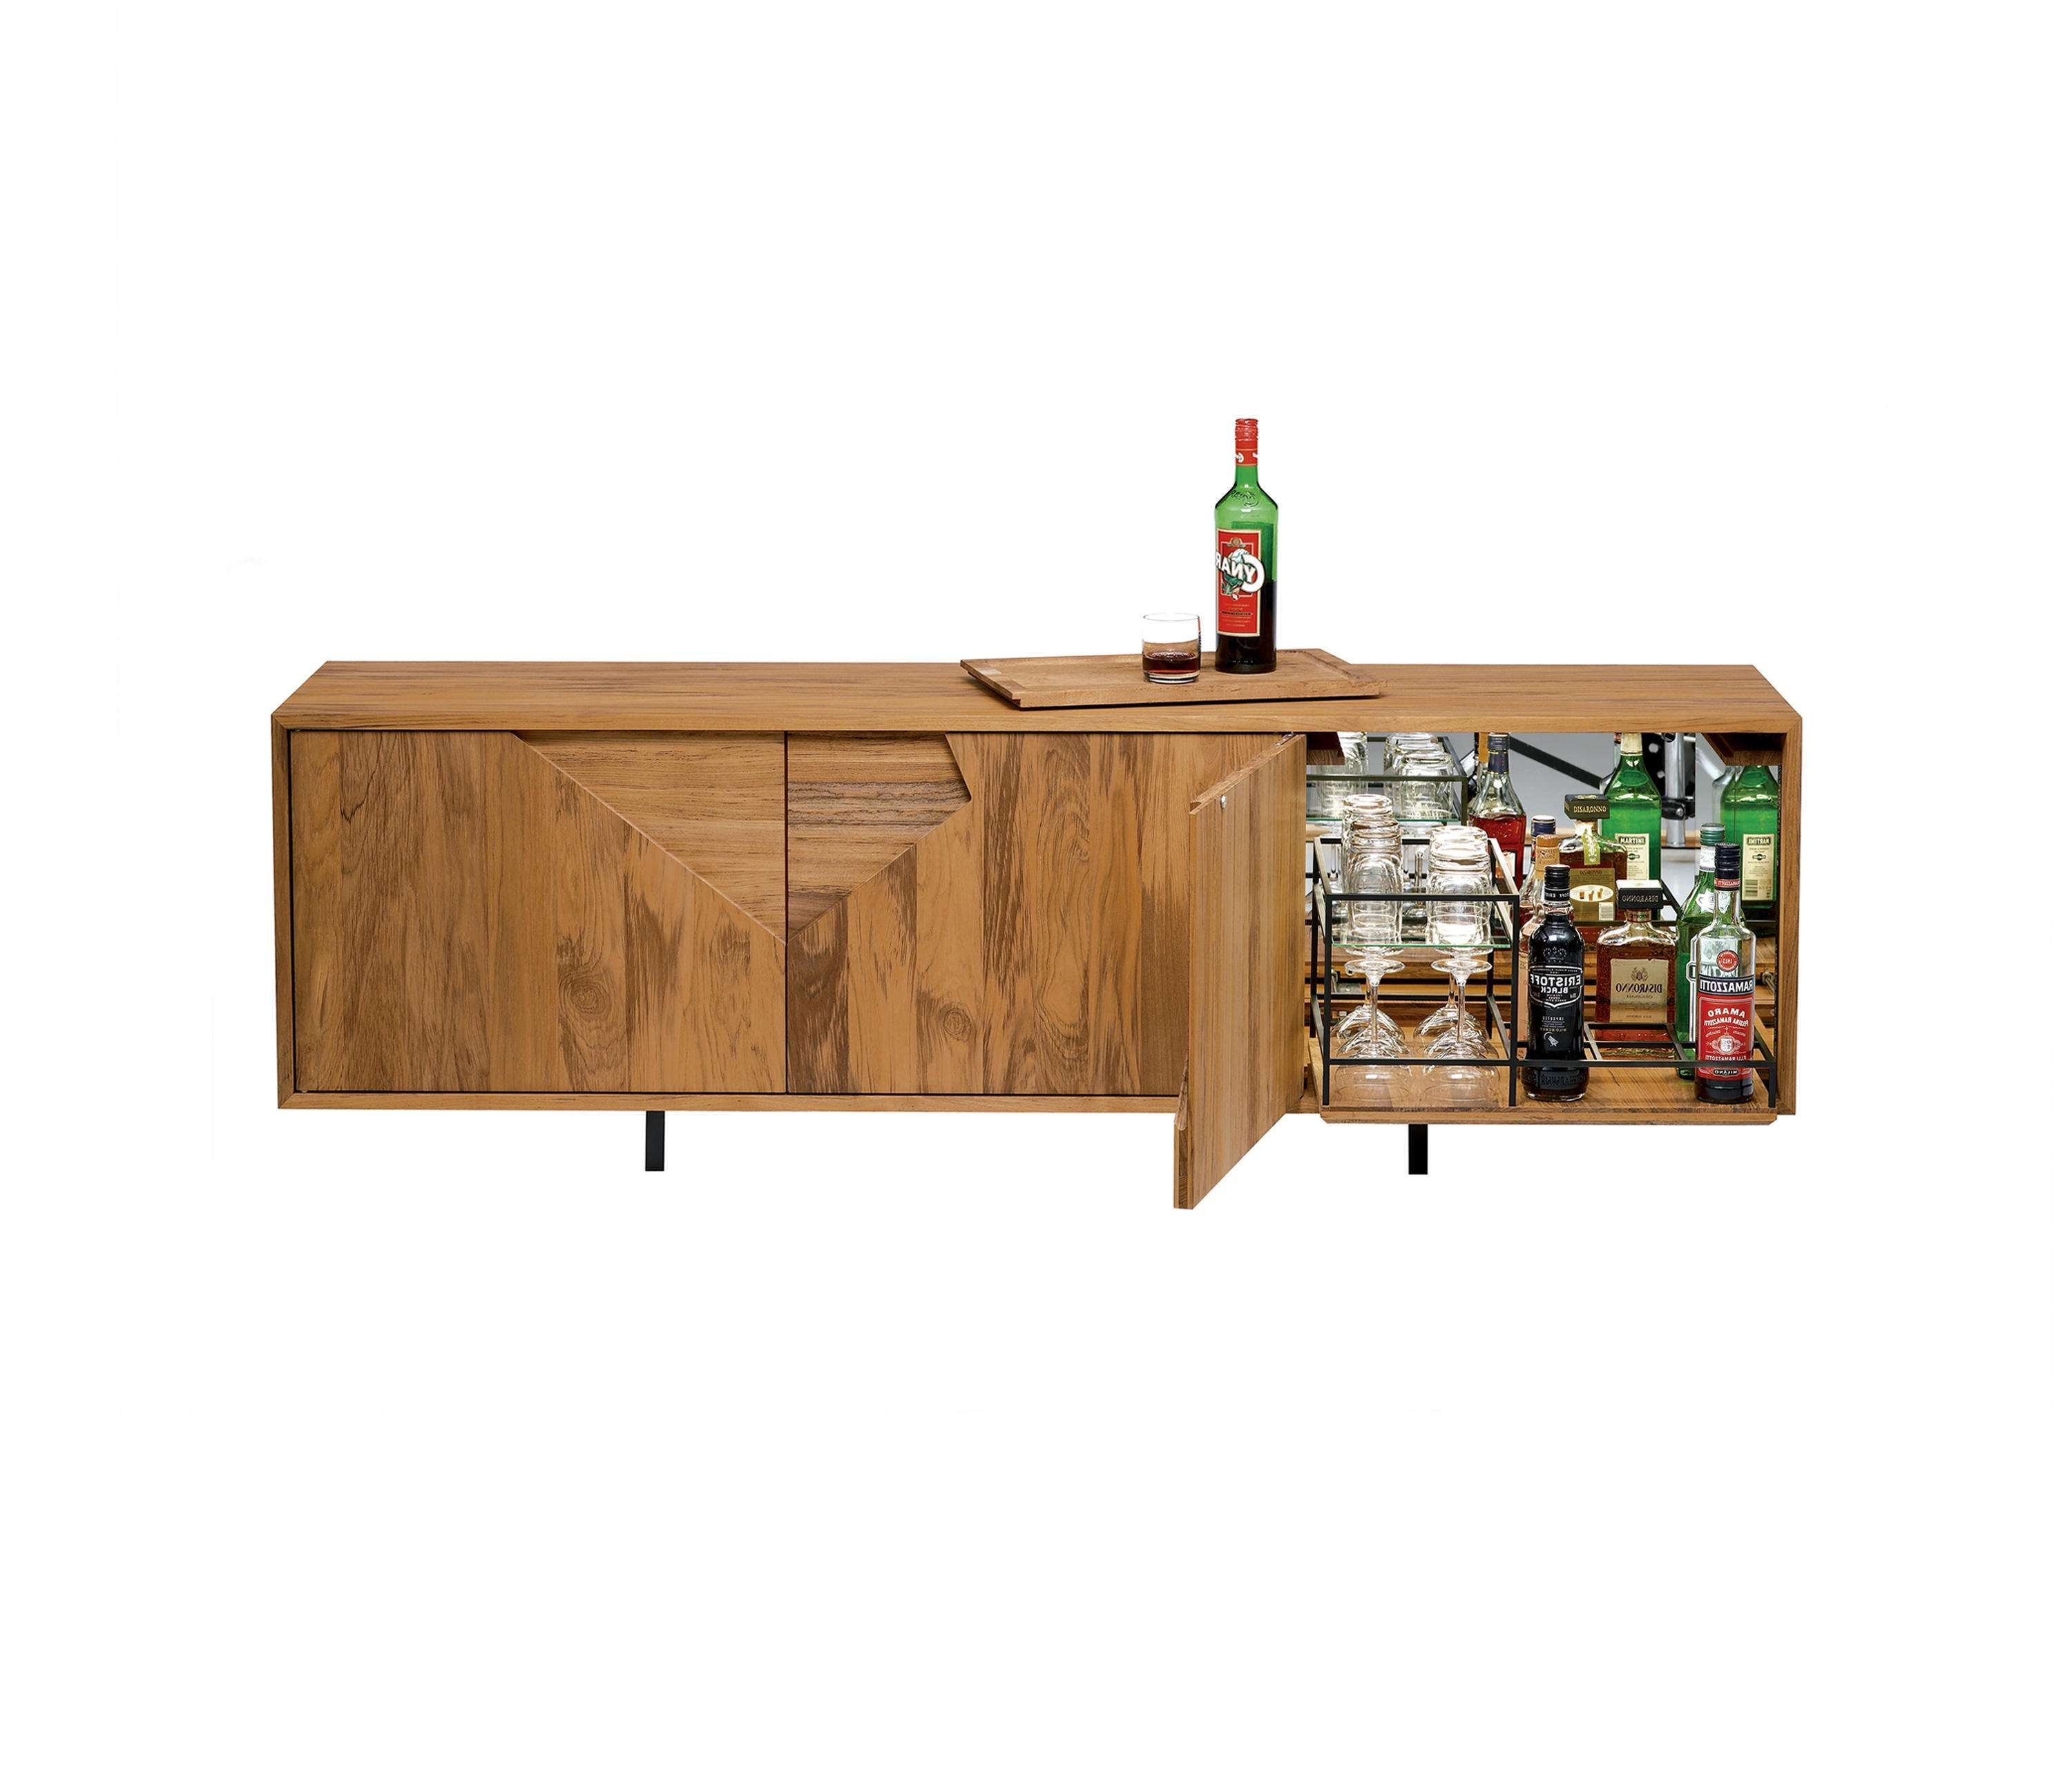 Sepuluh Sideboard – Sideboards From Inchfurniture | Architonic Inside Bar Sideboards (View 17 of 20)